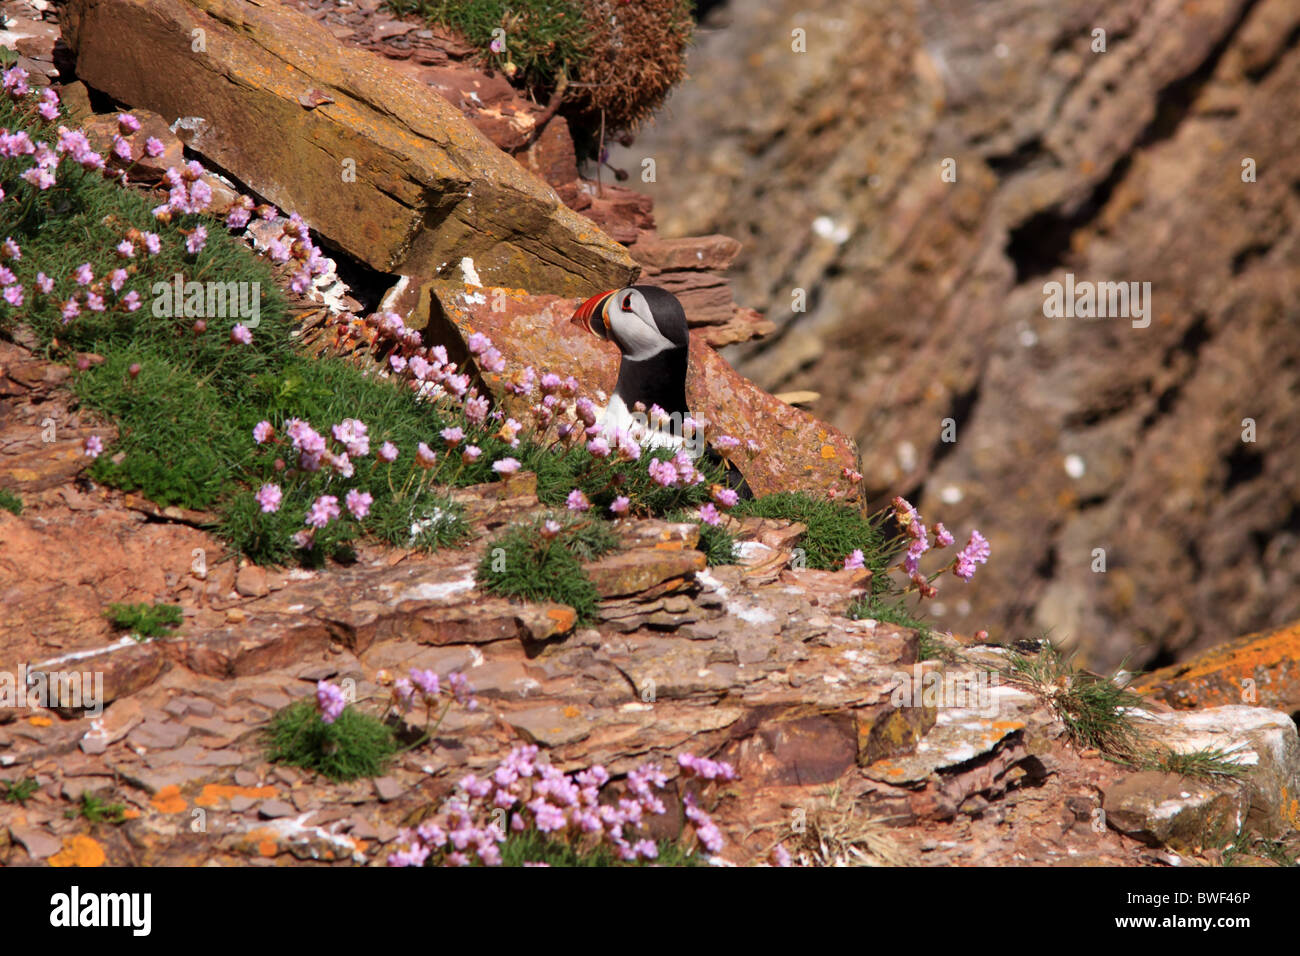 Puffins on cliff - Stock Image